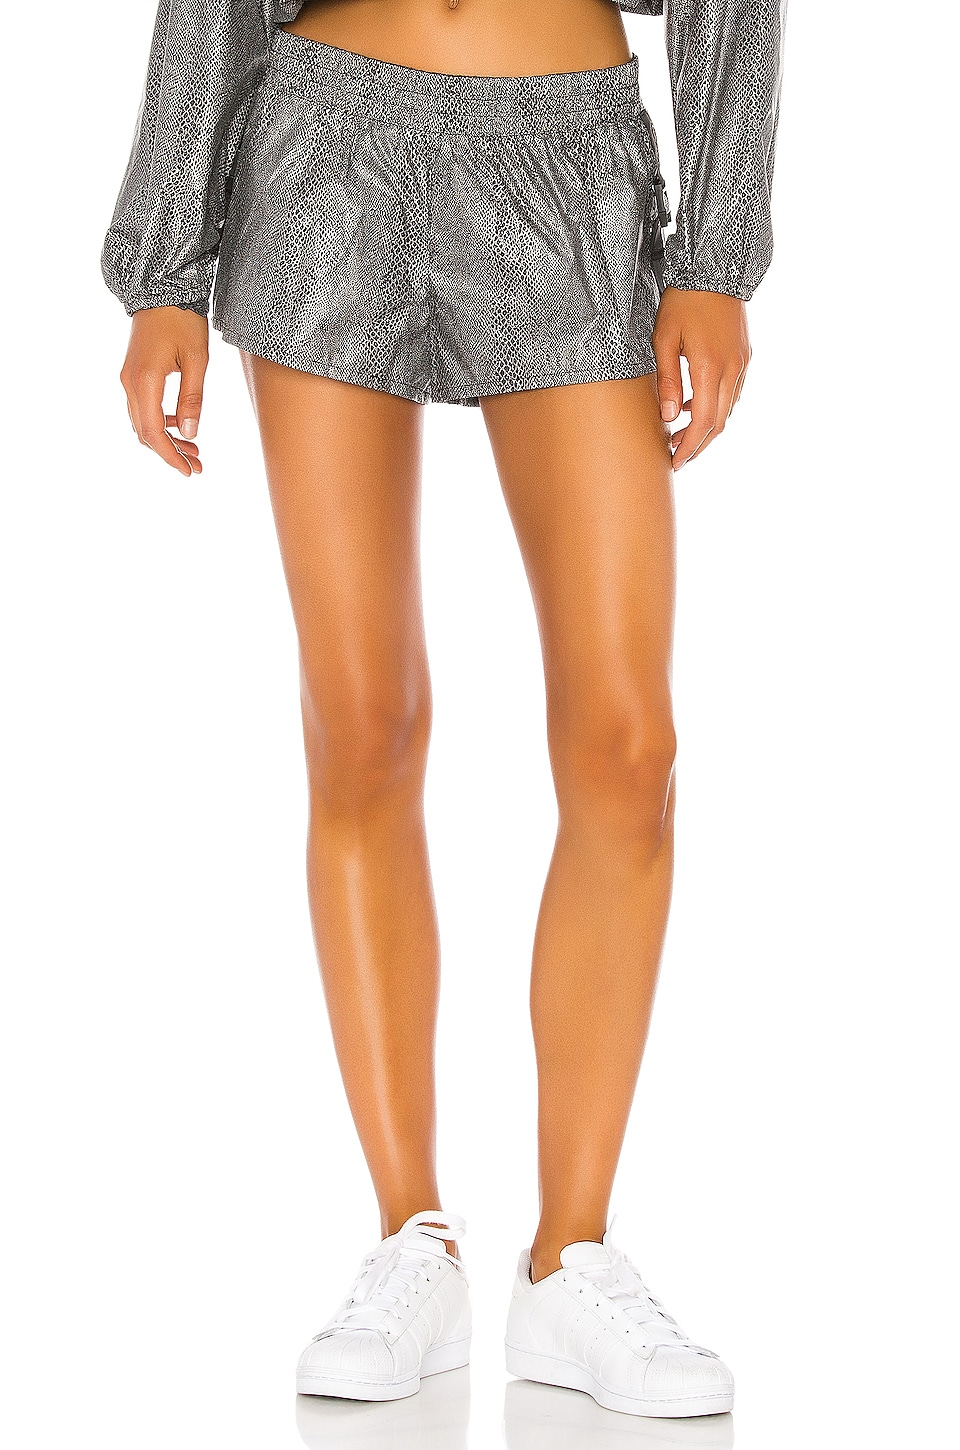 Free People X FP Movement Diamond Back Reflective Short in Black Combo